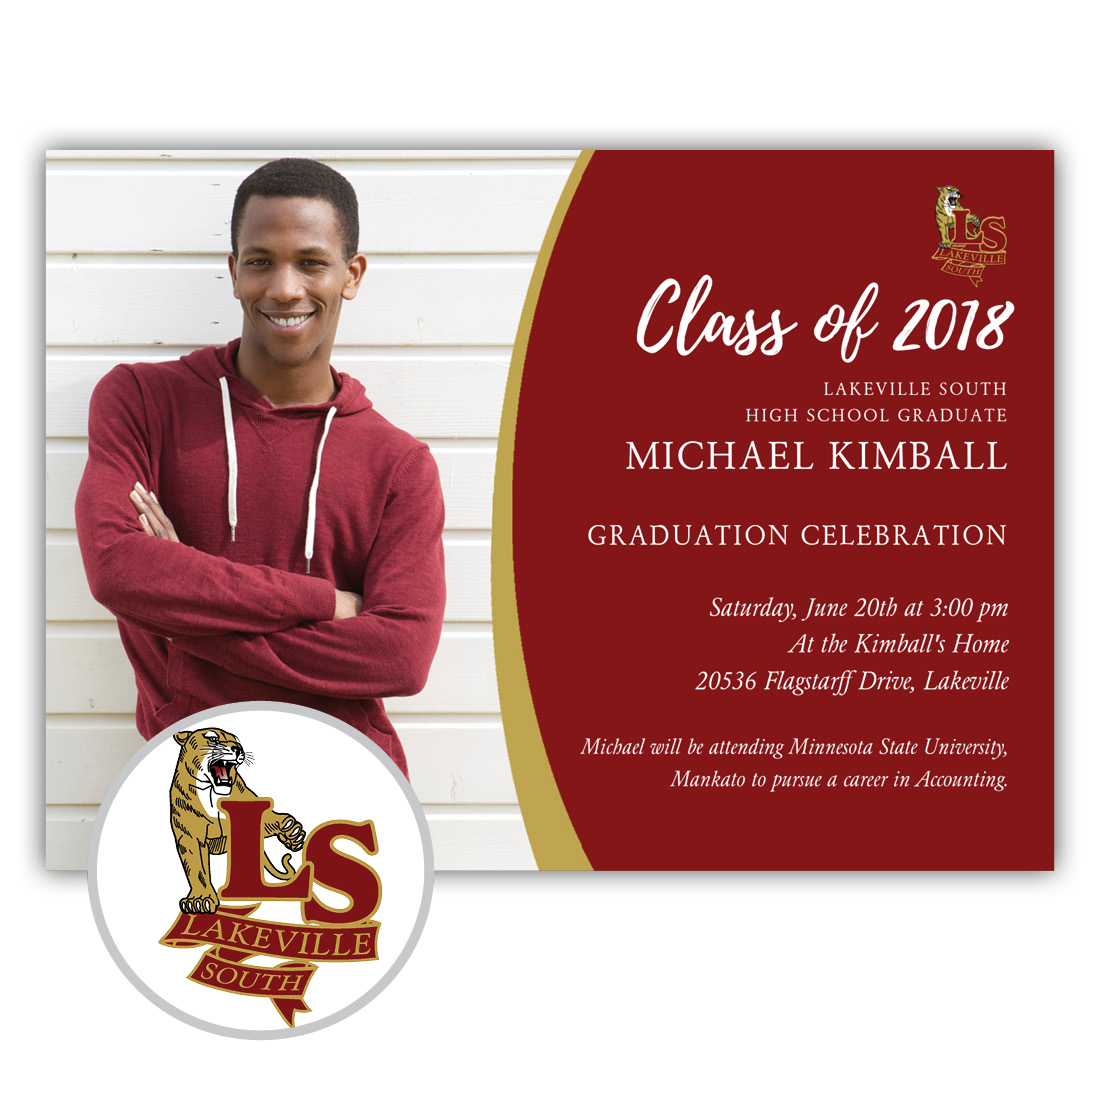 School Spirit, Lakeville South - Focus in Pix Graduation Party Invitation or Announcement